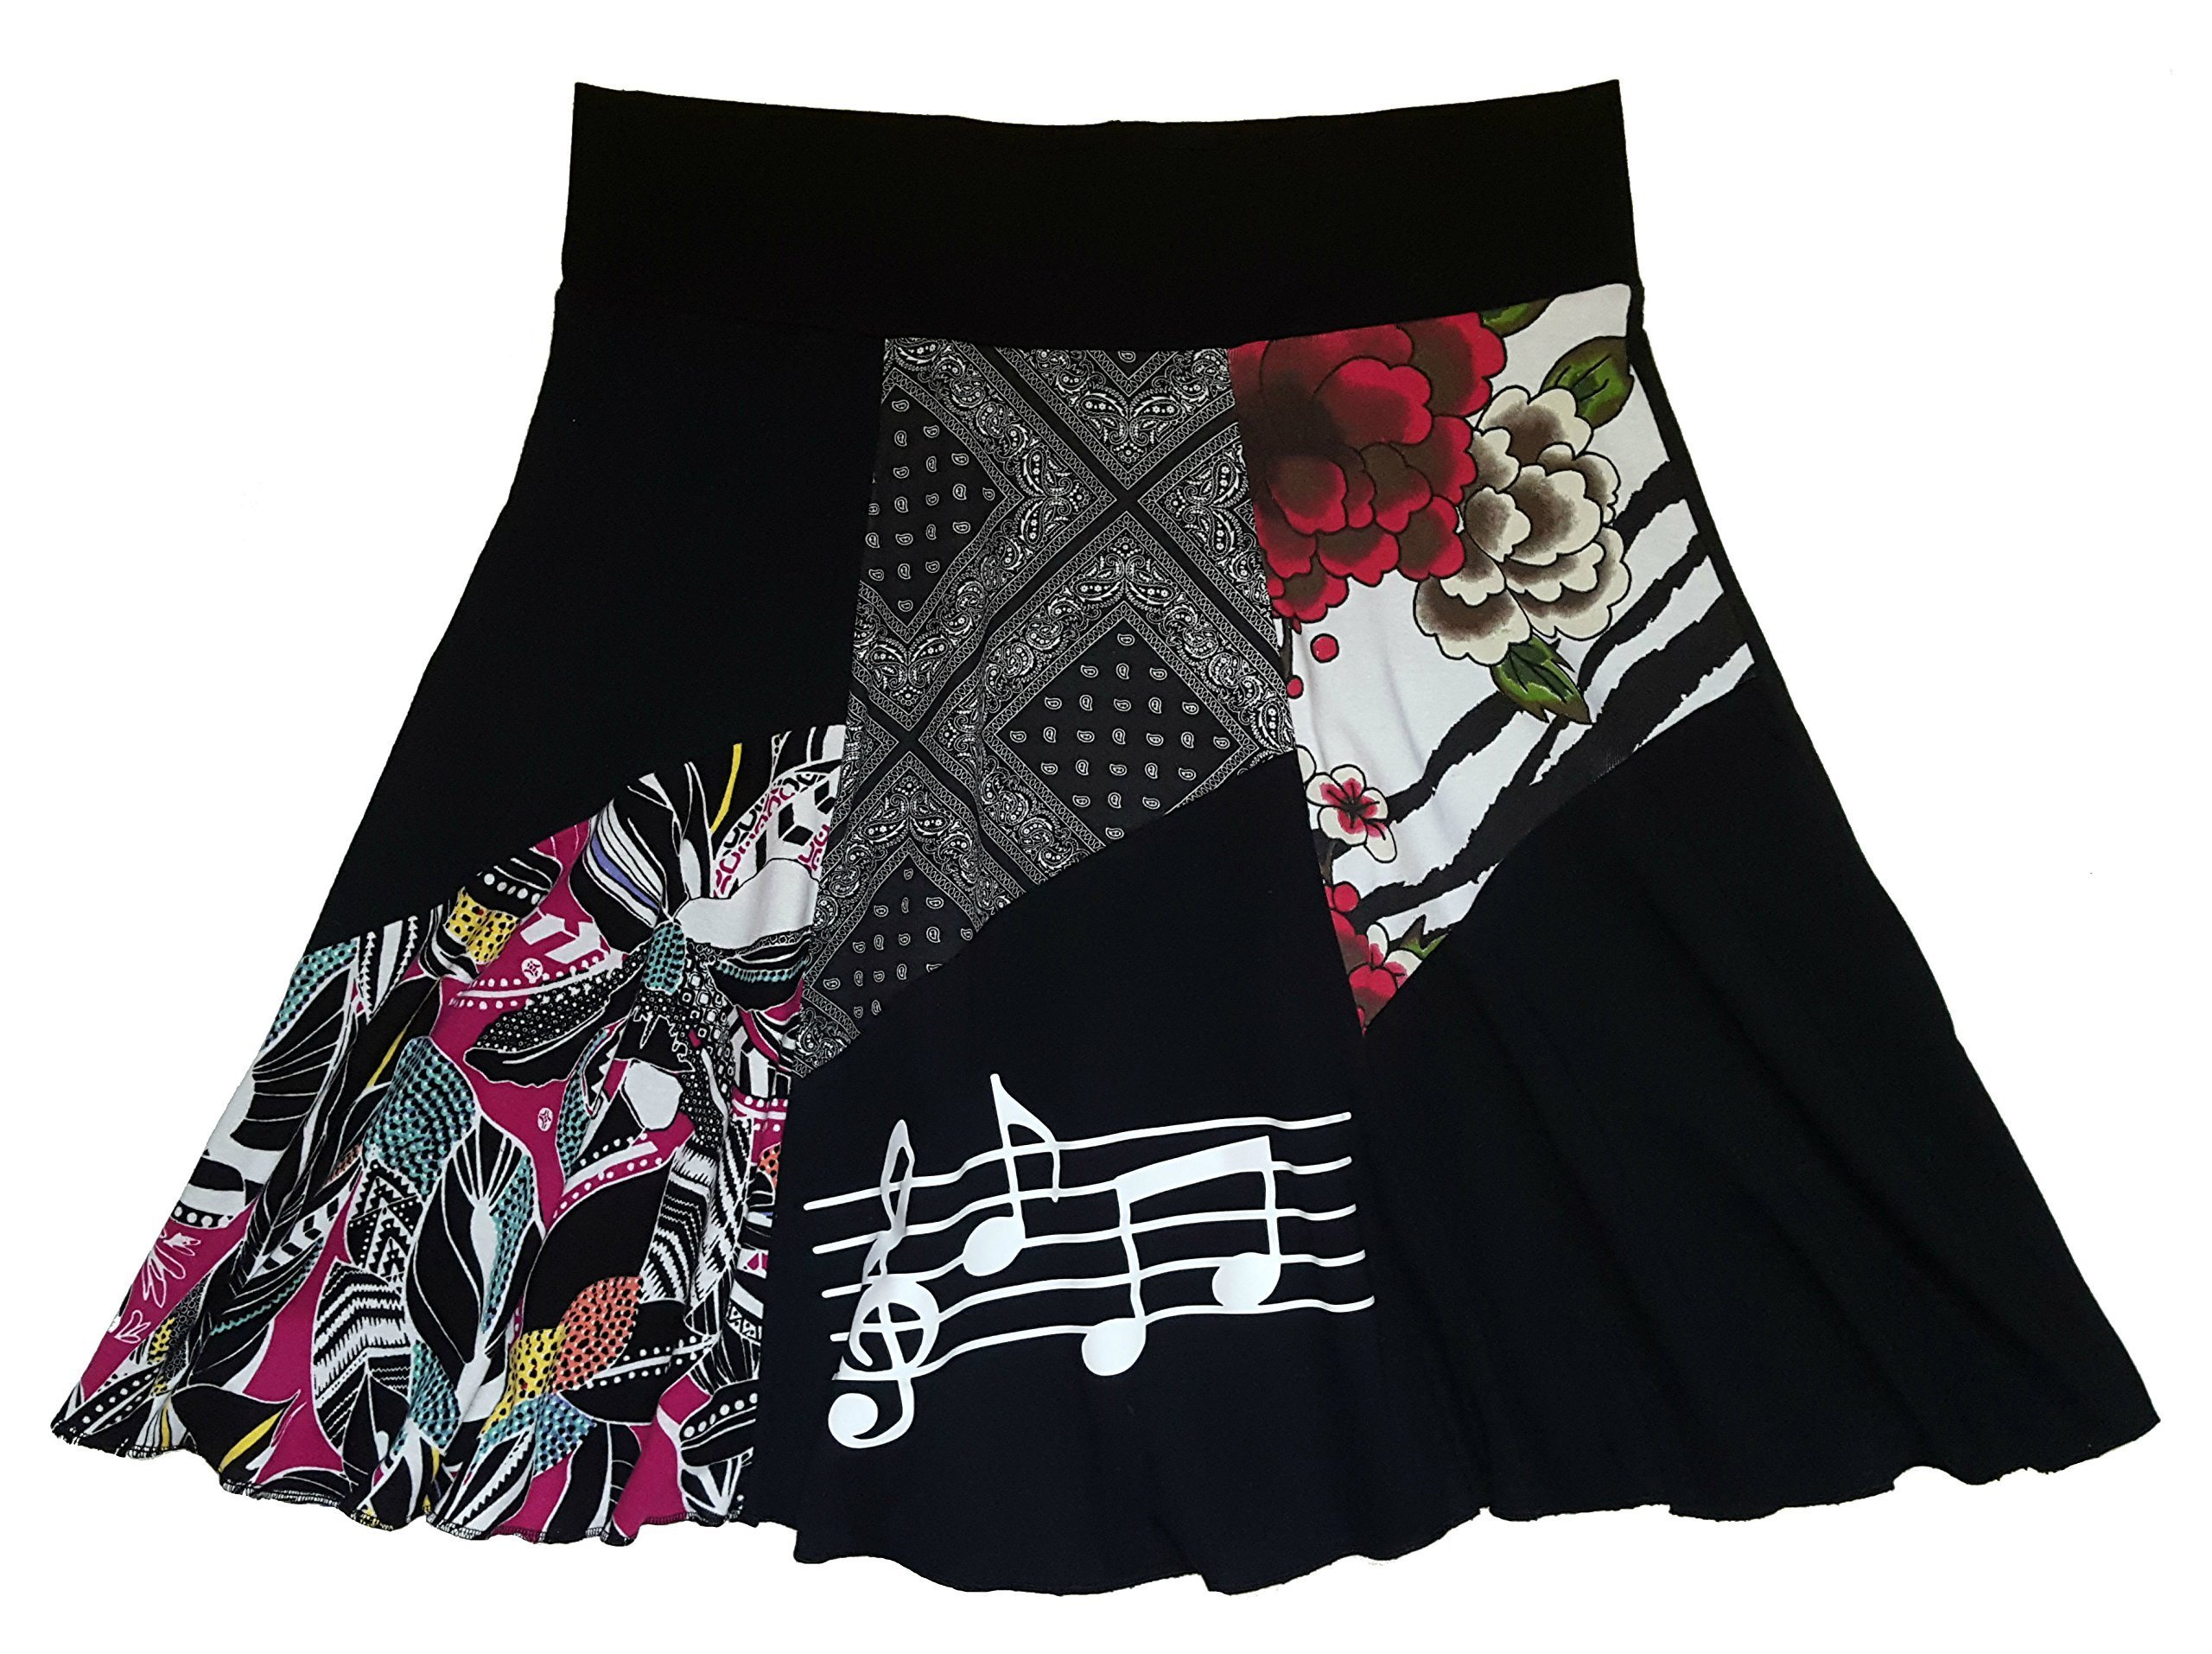 Piano T-Shirt Skirt Women's Size XL 1X Plus Size Musical Notes Upcycled Hippie Skirt